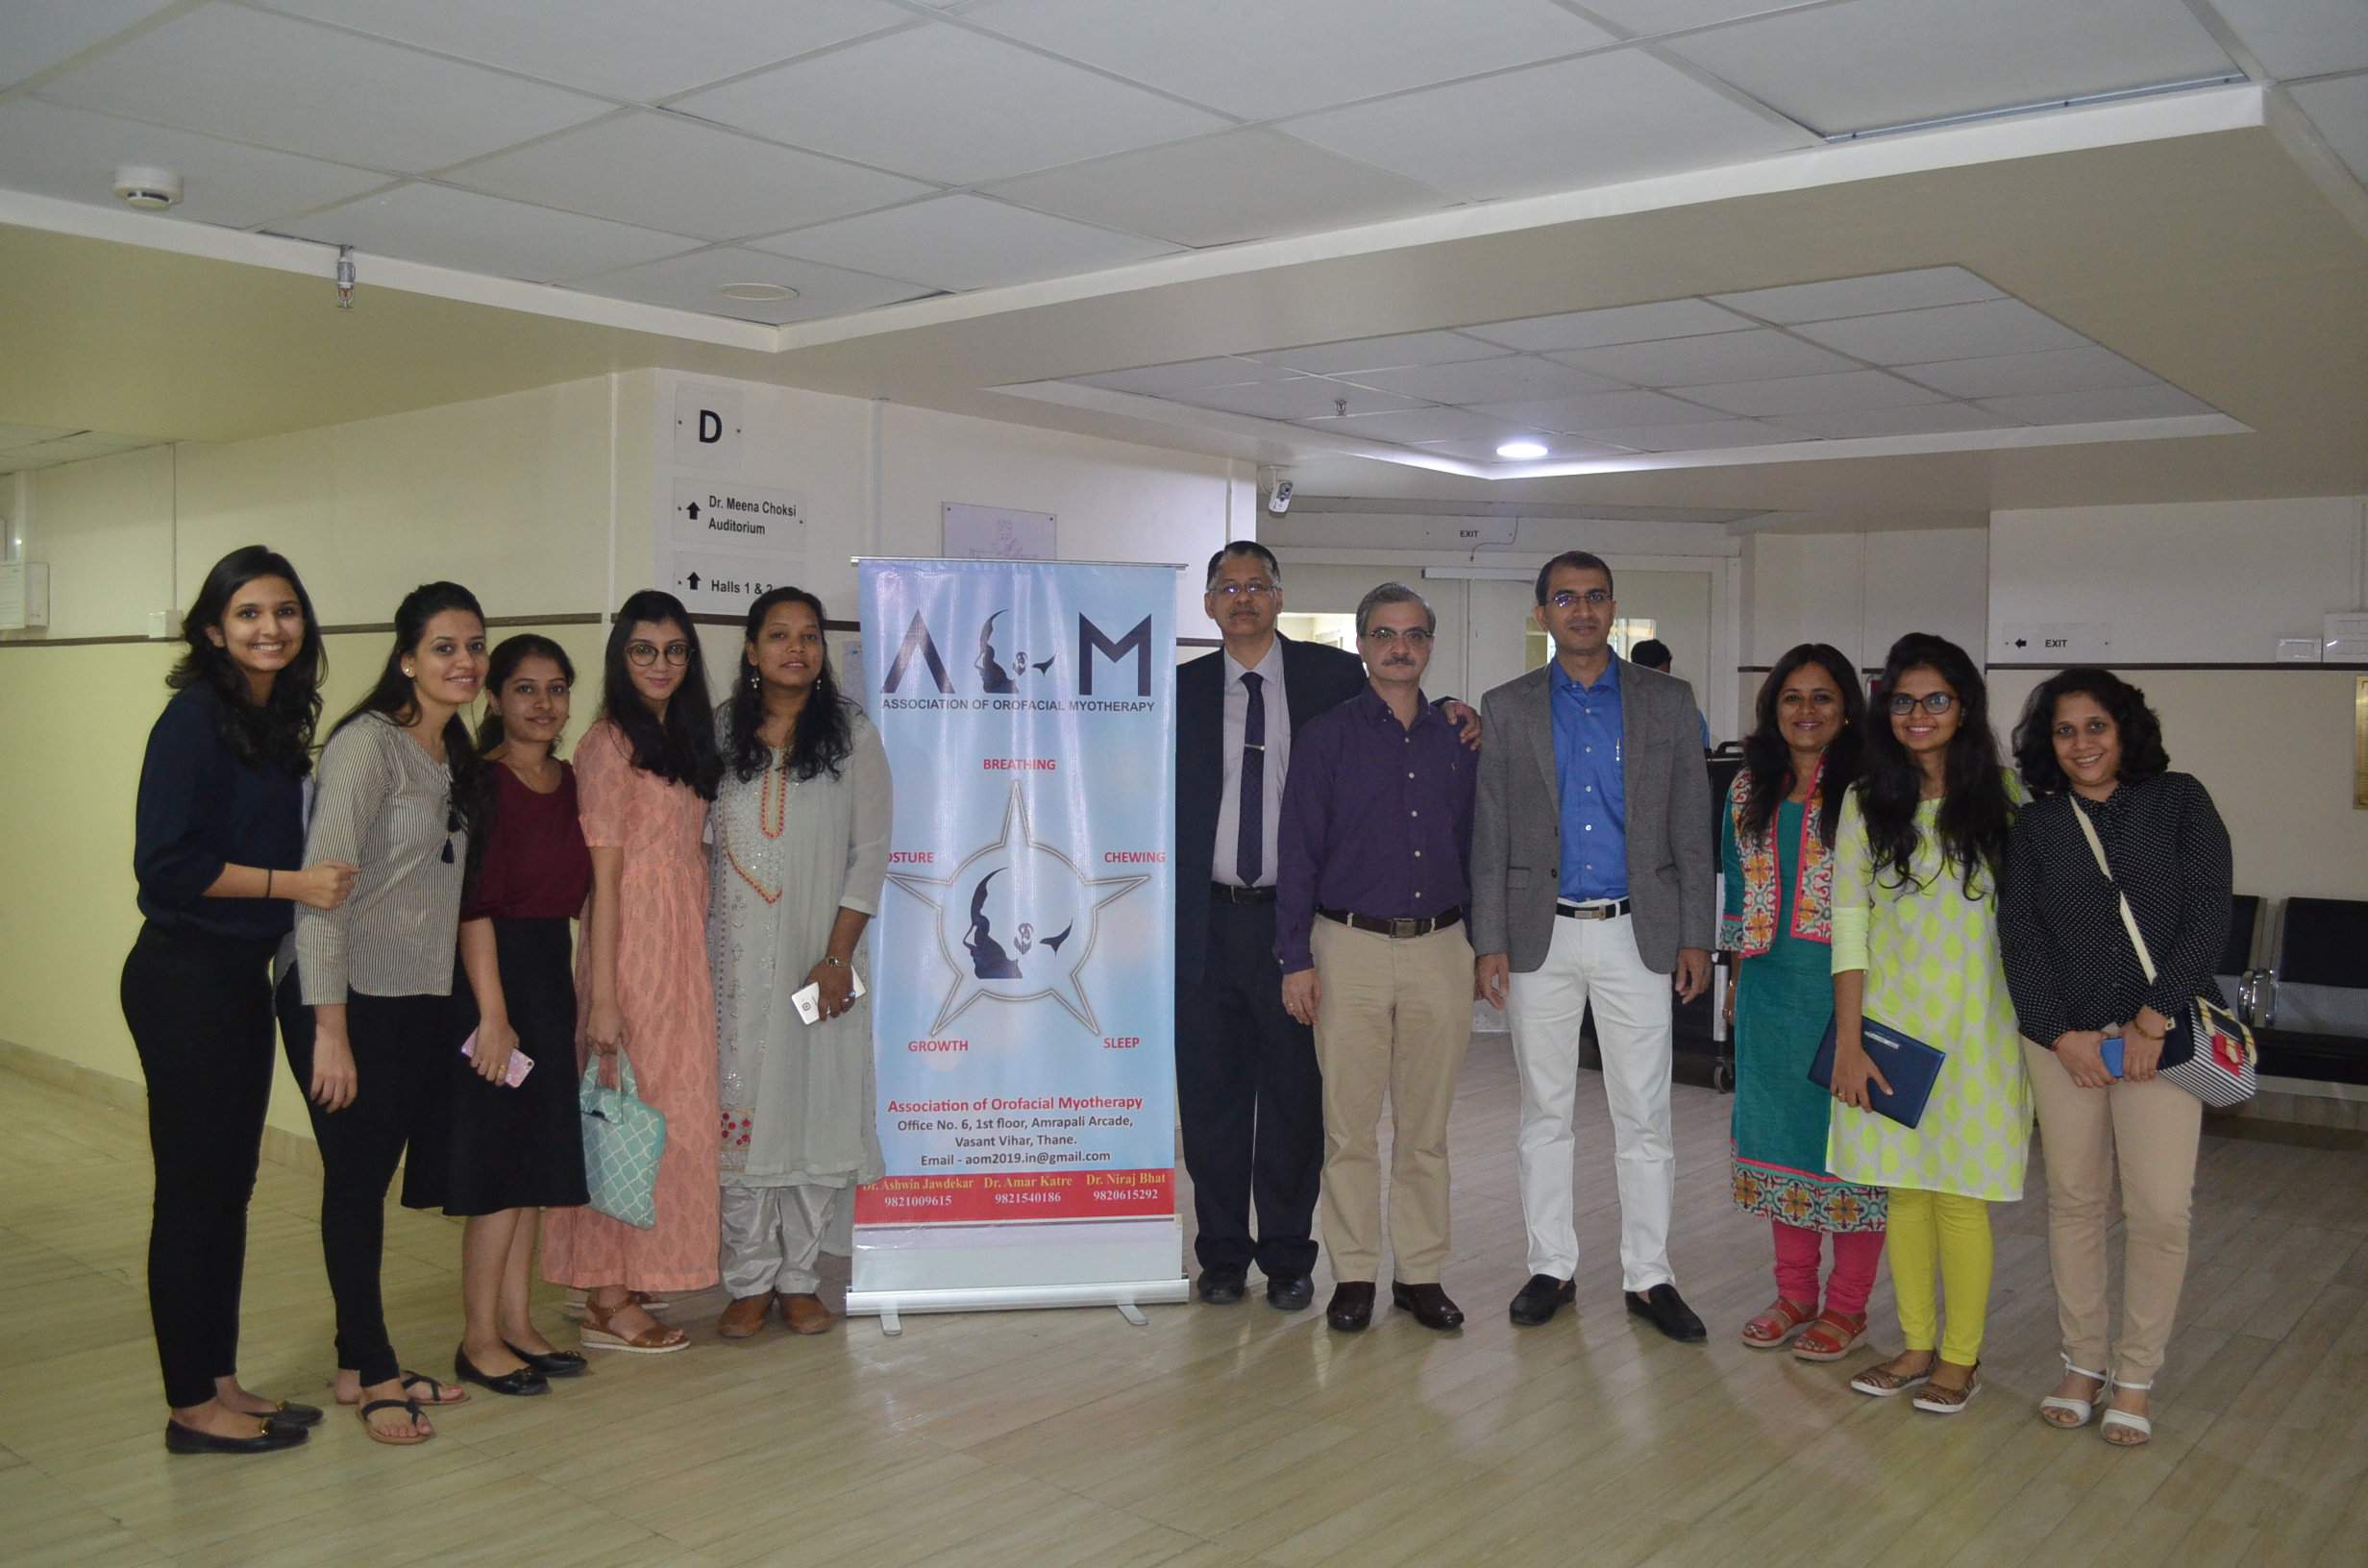 Past Event - Launch of the Foundation of Orofacial Myotherapy